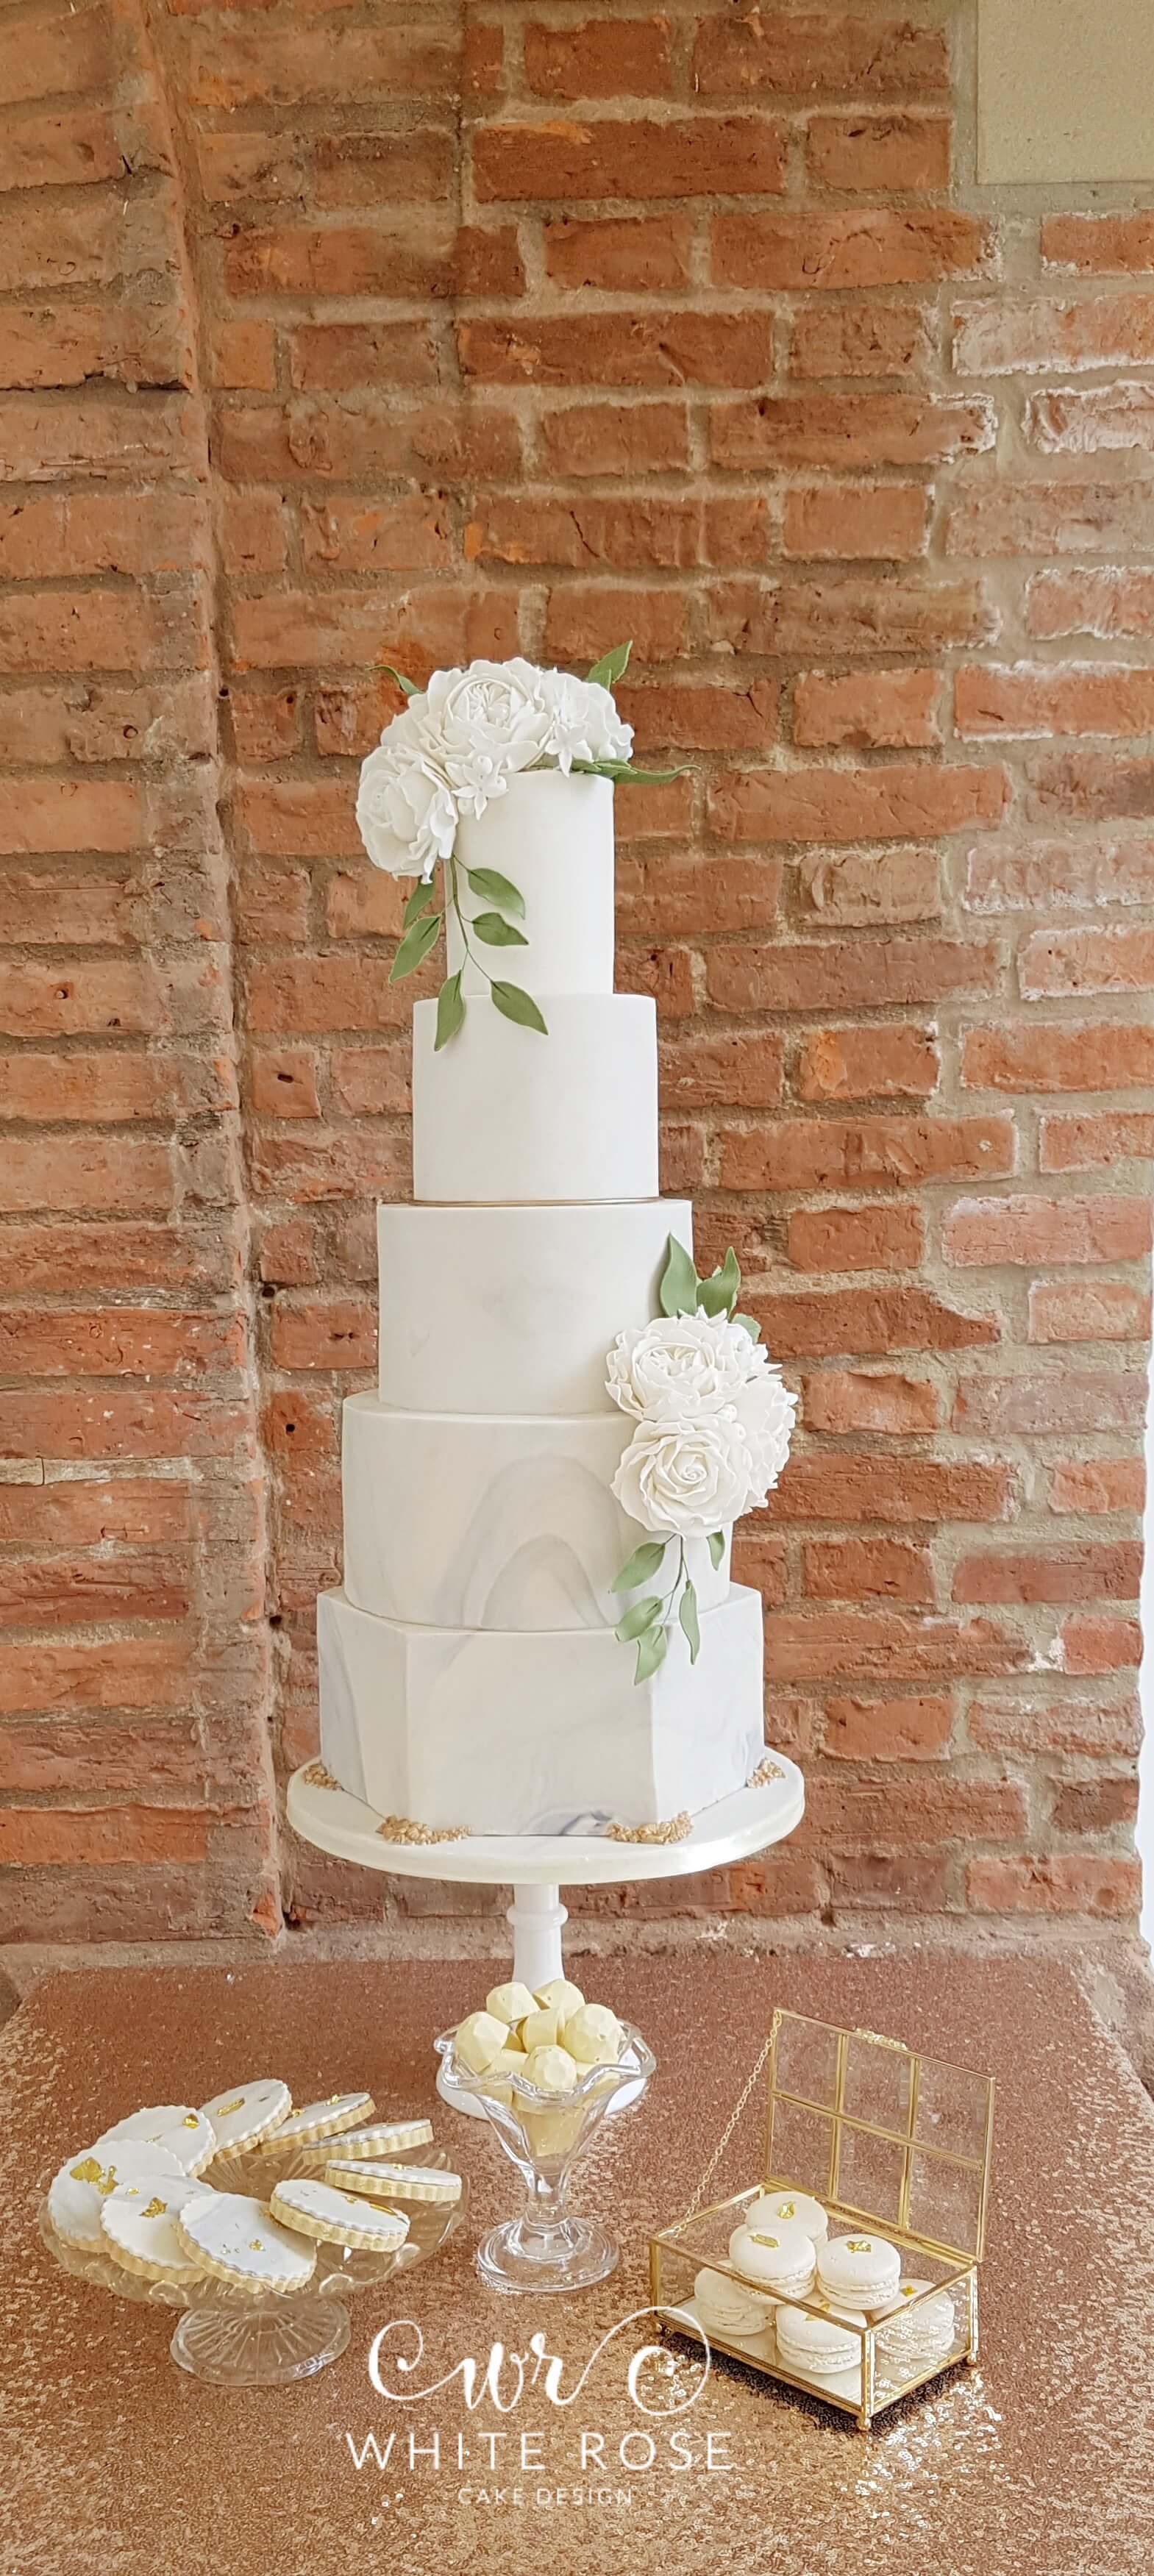 Elegant 5 Tier Marble Wedding Cake with White Roses at Goldsborough Hall by White Rose Cake Design Bespoke Cake Makers in West Yorkshire (1)